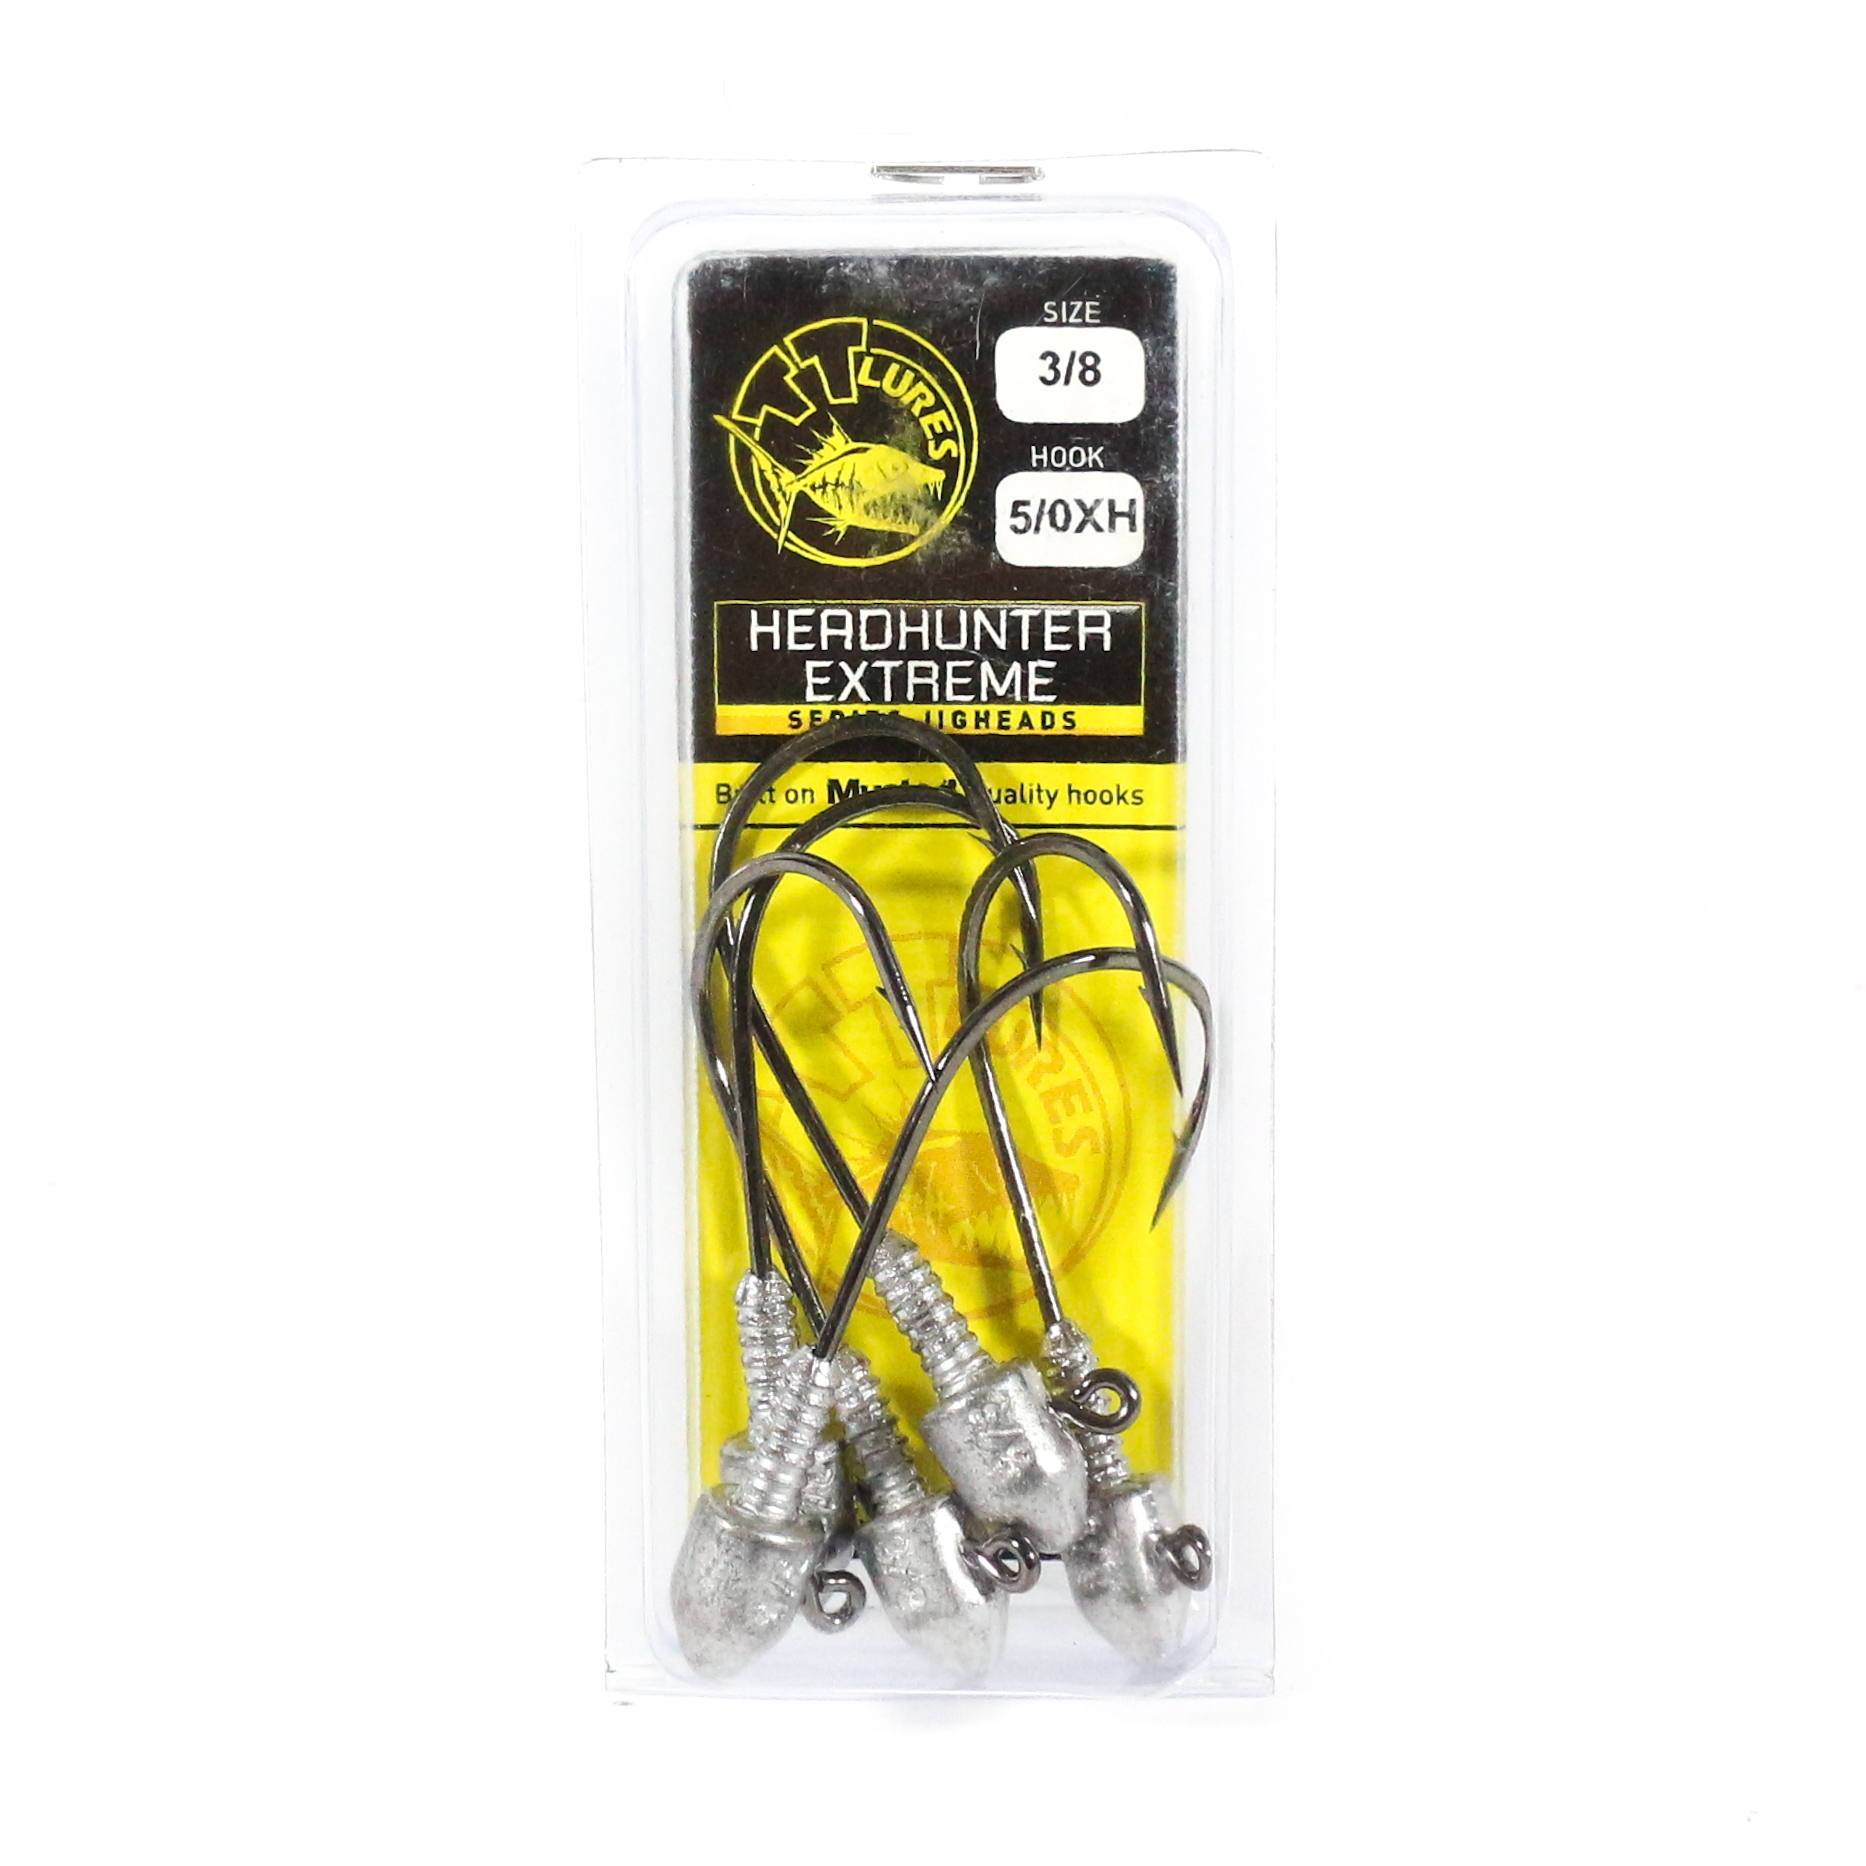 Tackle Tactics TT Head Hunter Extreme Jig Head 3/8 oz 5/0 XH 5 per pack (1319)